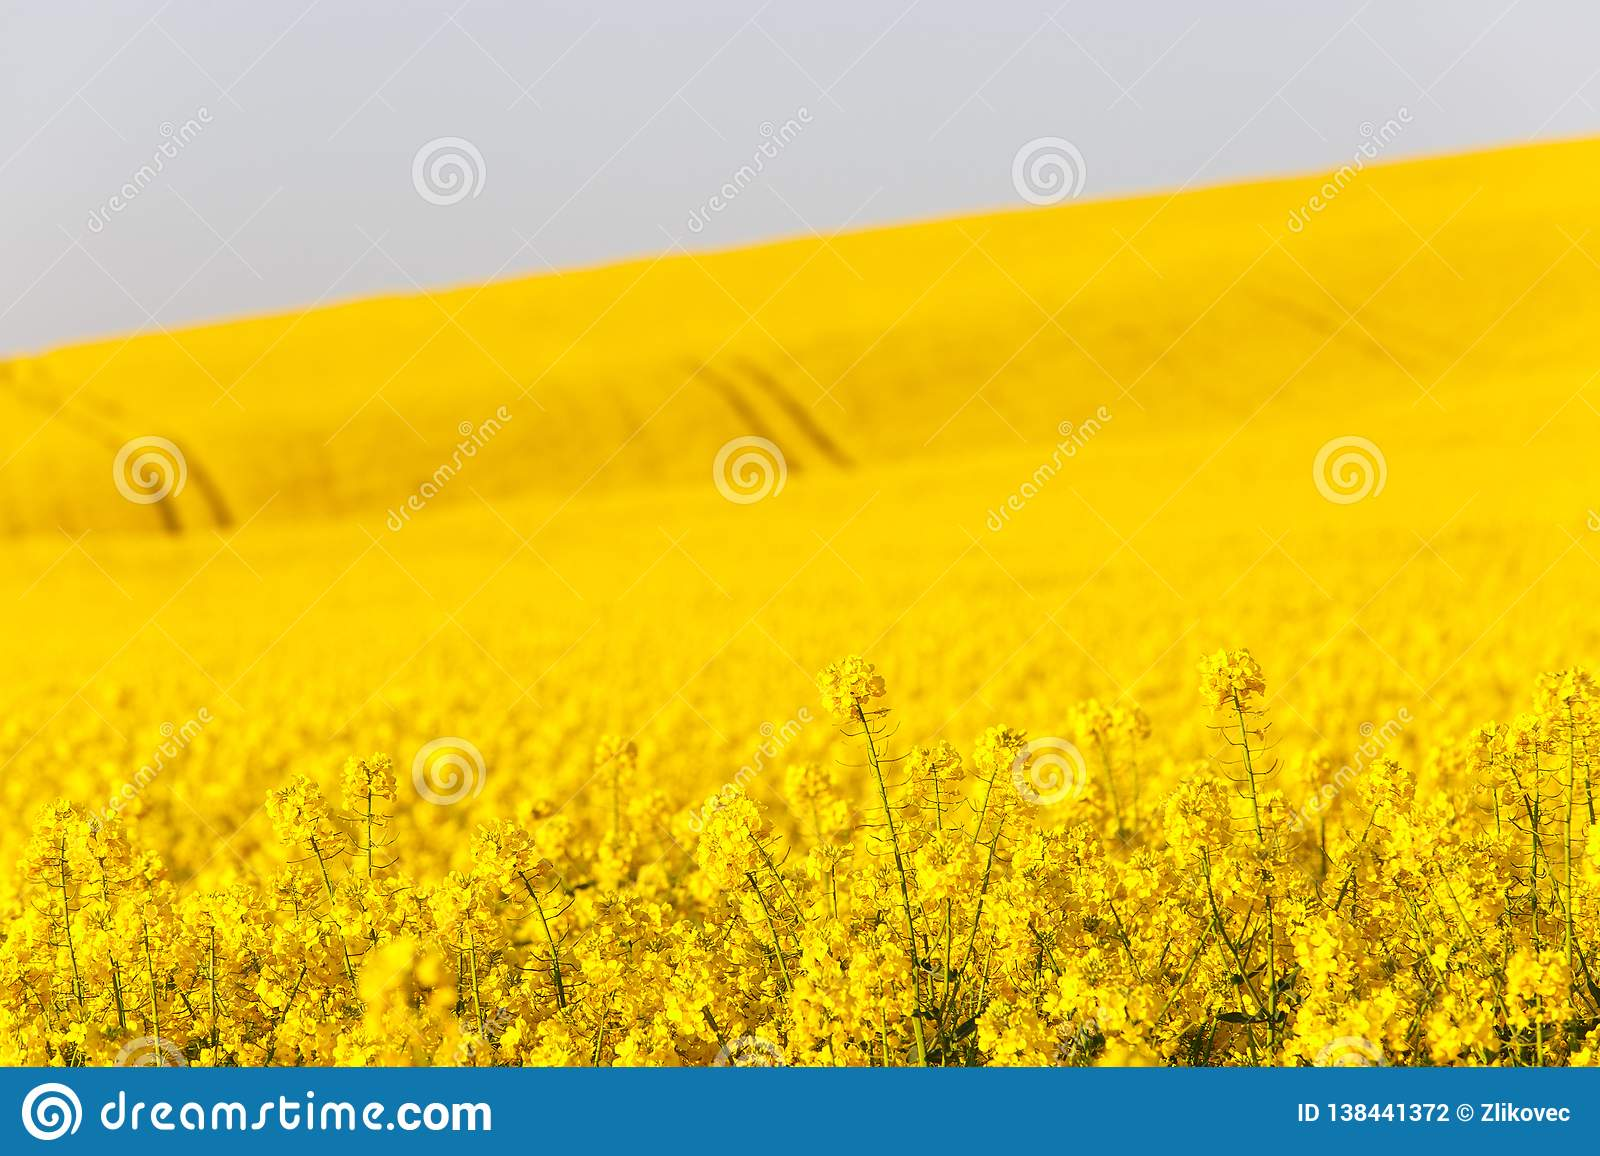 Extensive Field Of Rapeseed Stock Photo - Image of herbicide